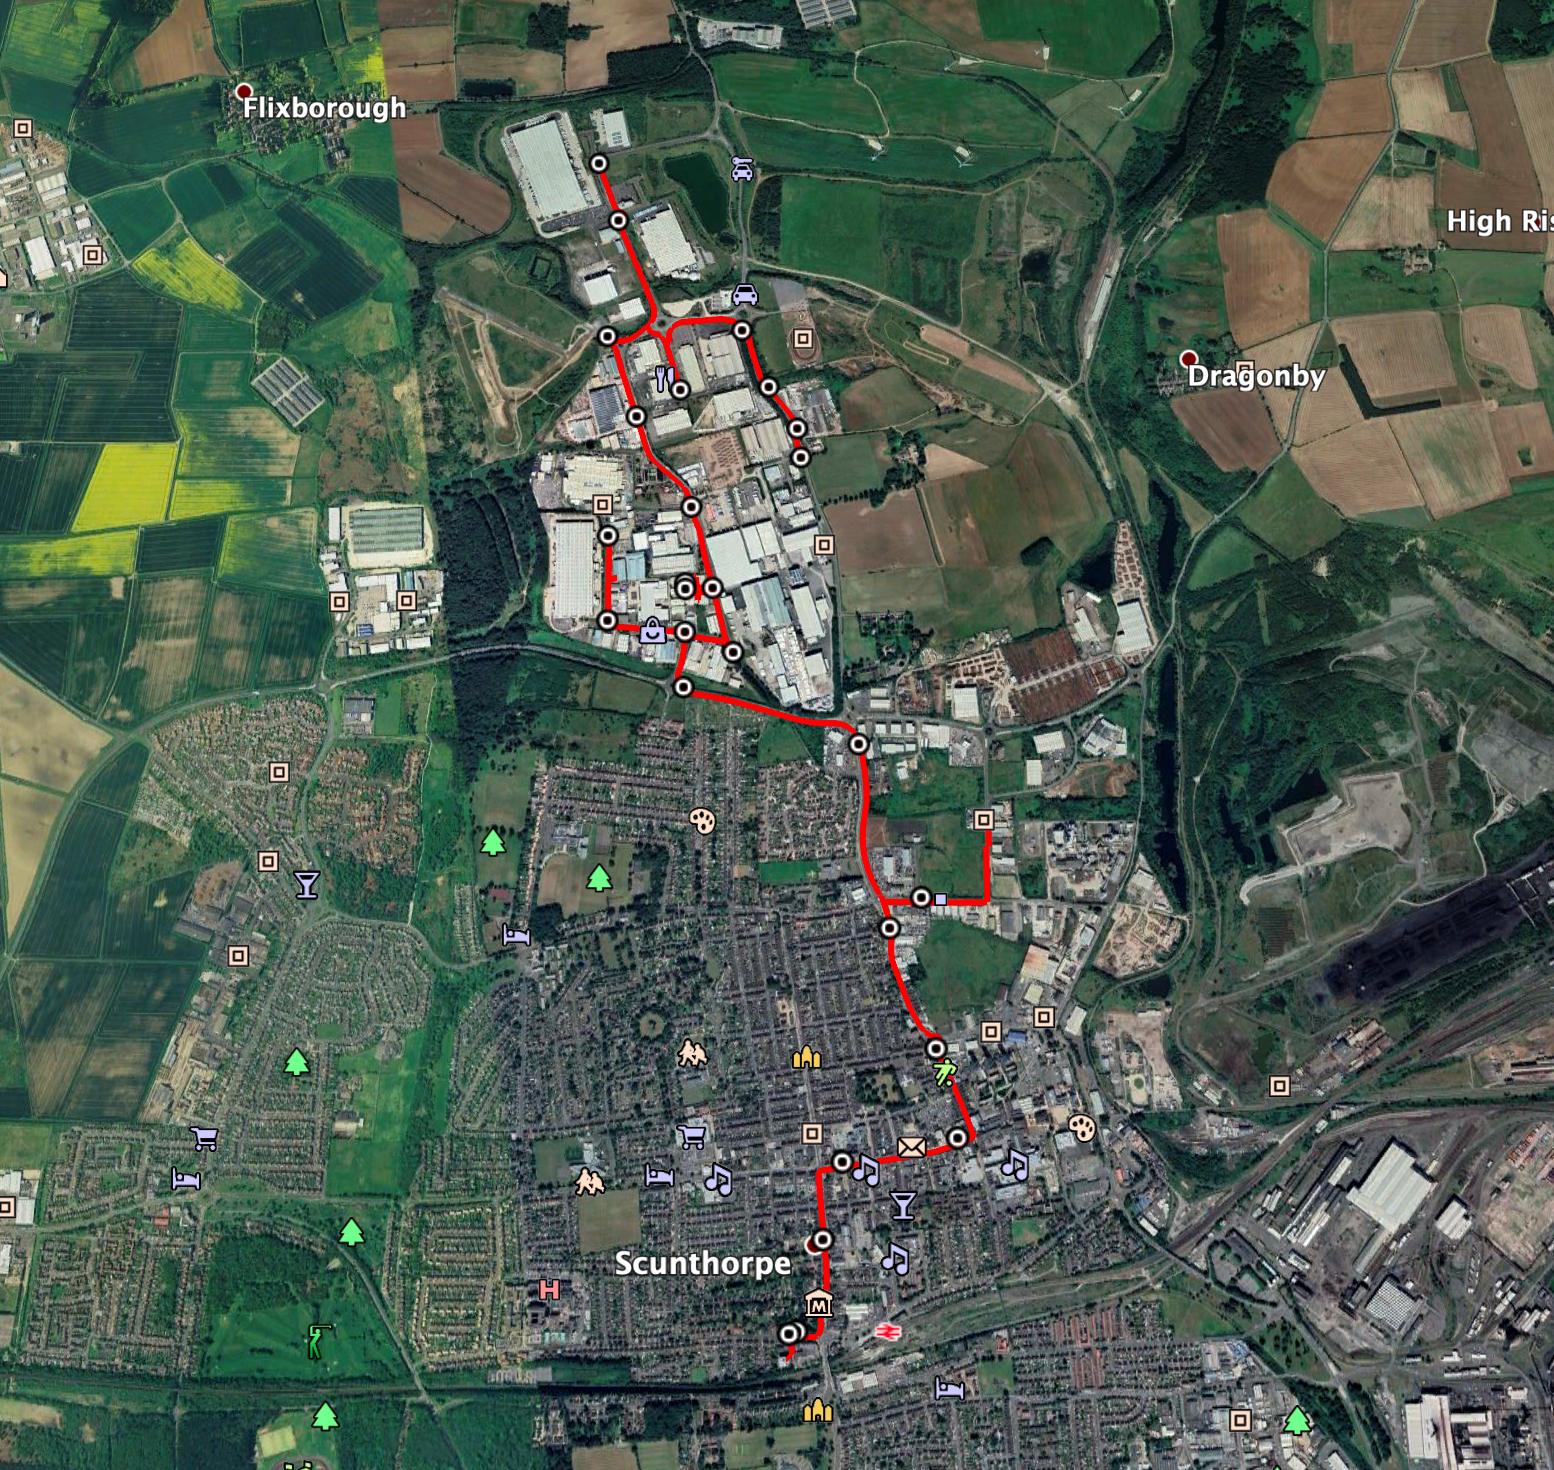 aerial map view of scunthorpe network highlighted in red